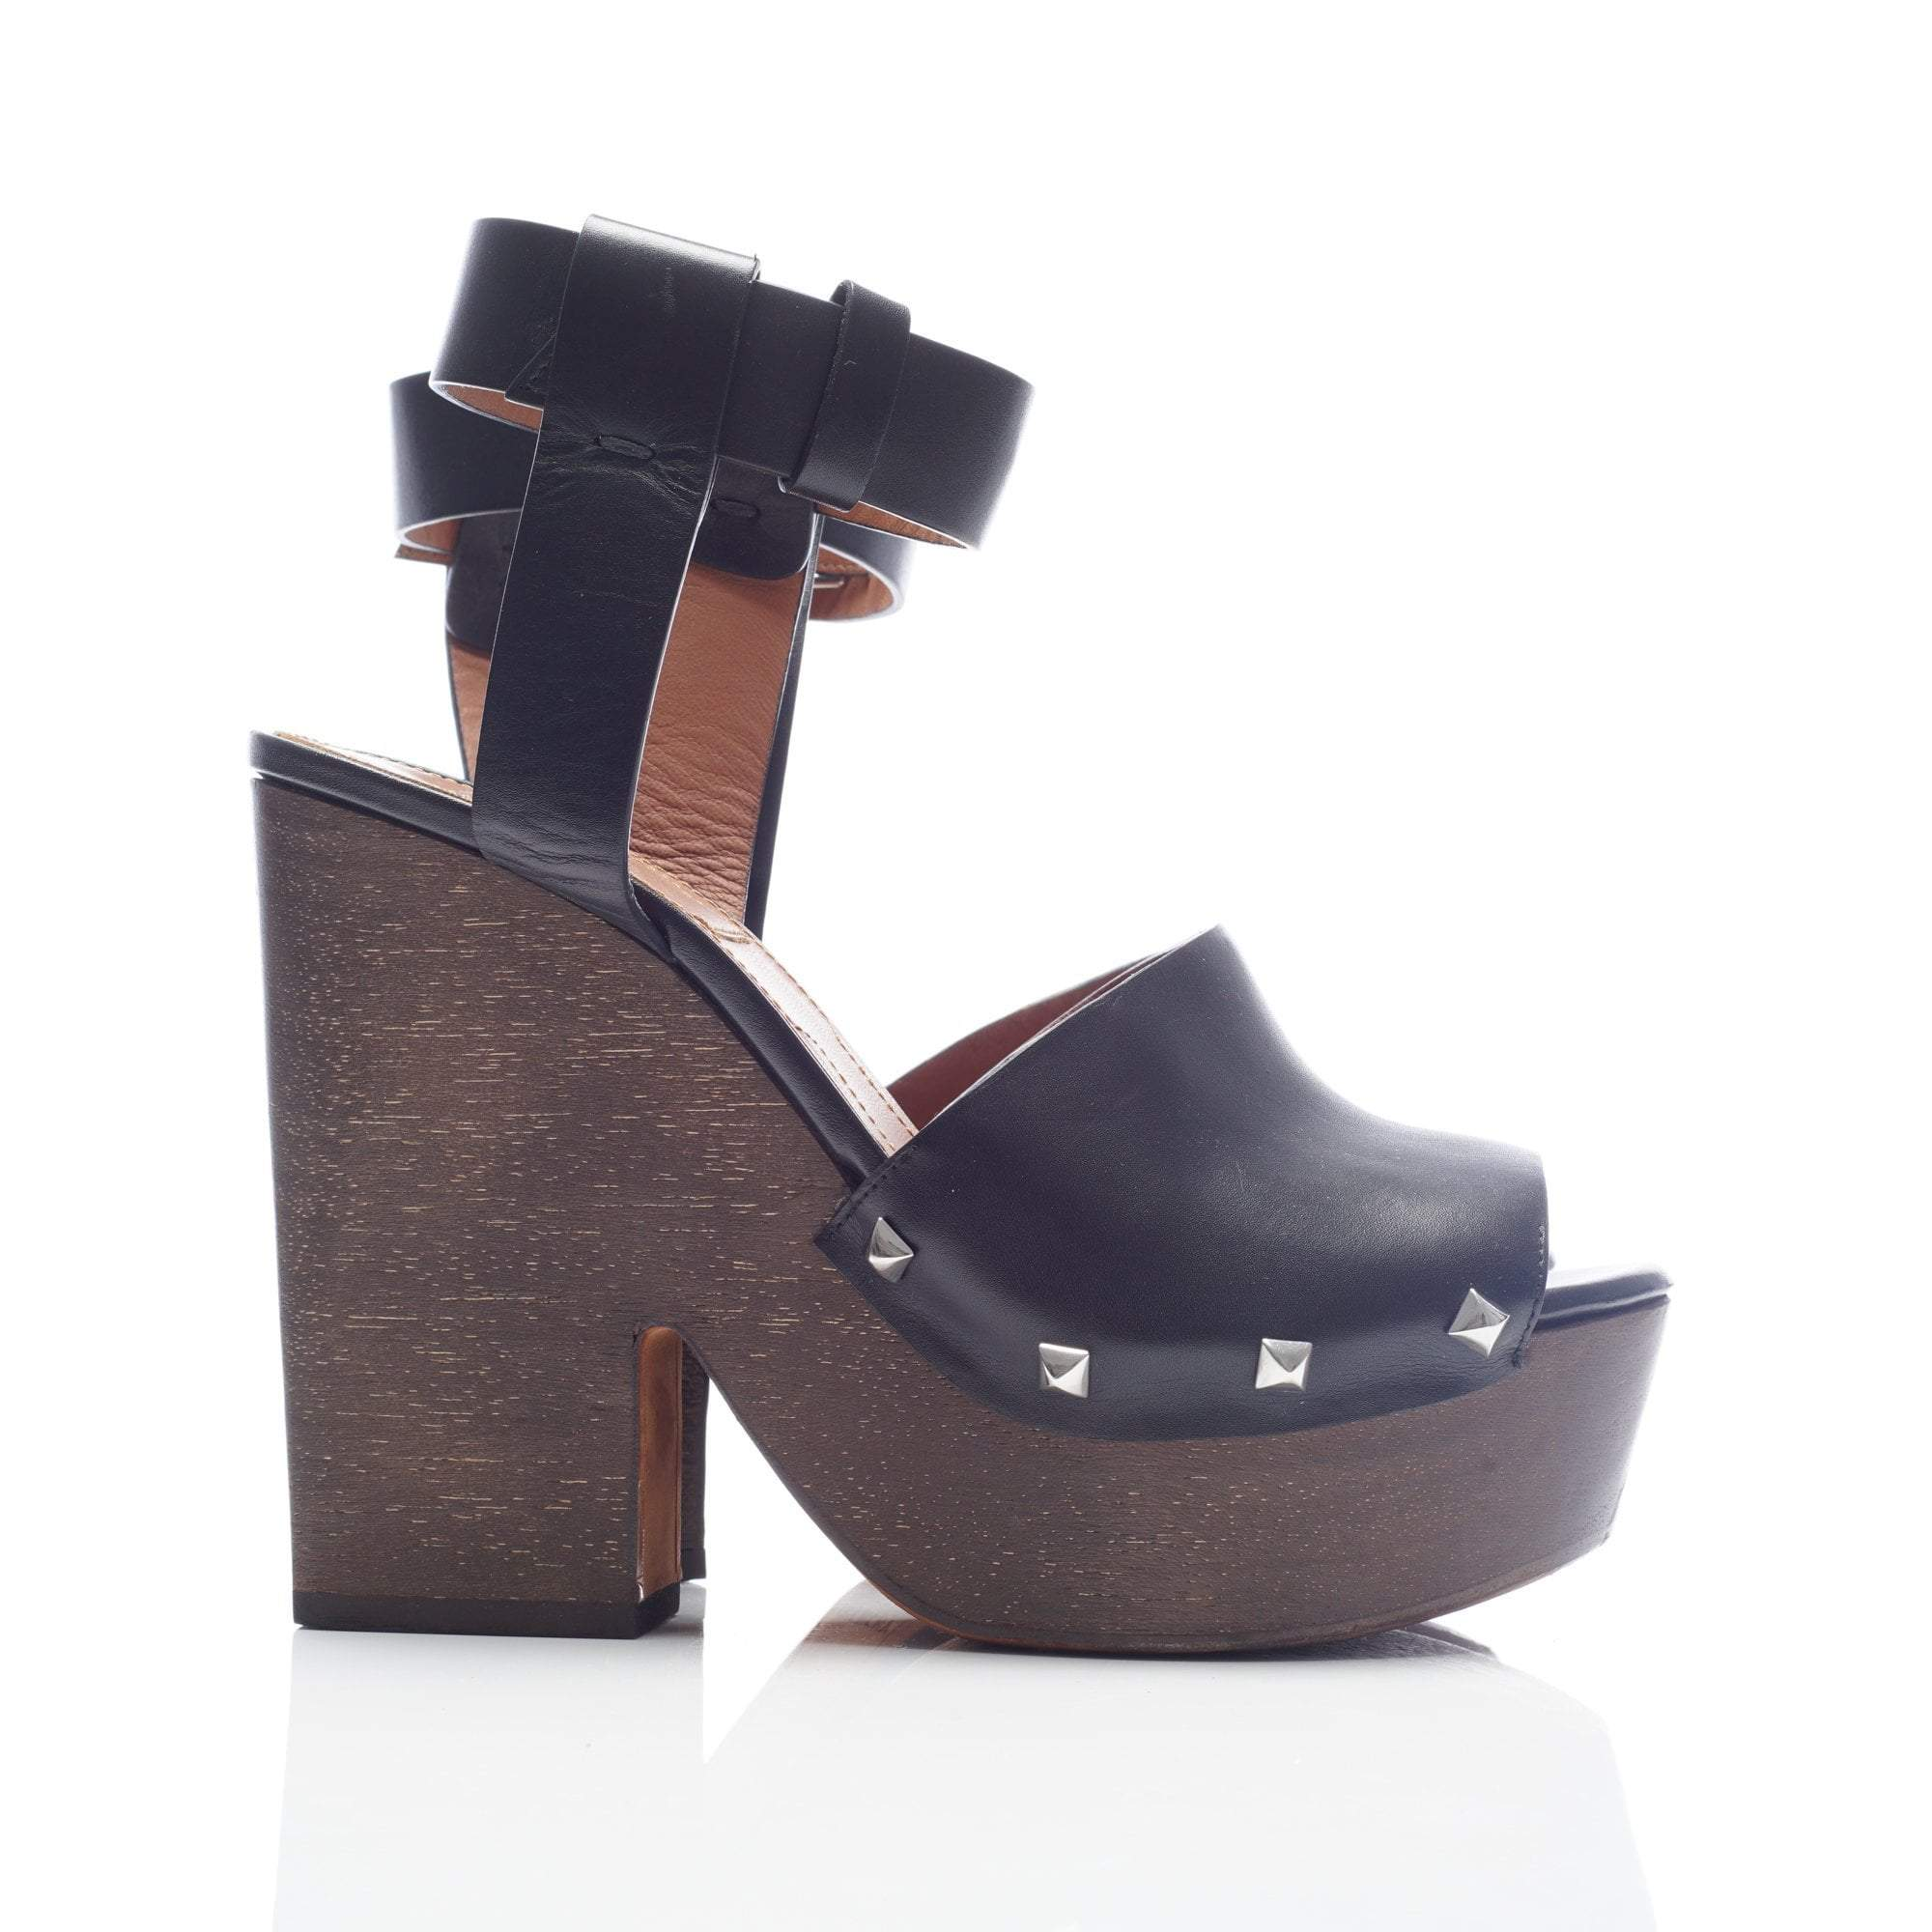 Givenchy Sofia' Stud Leather Wooden Clog Sandals